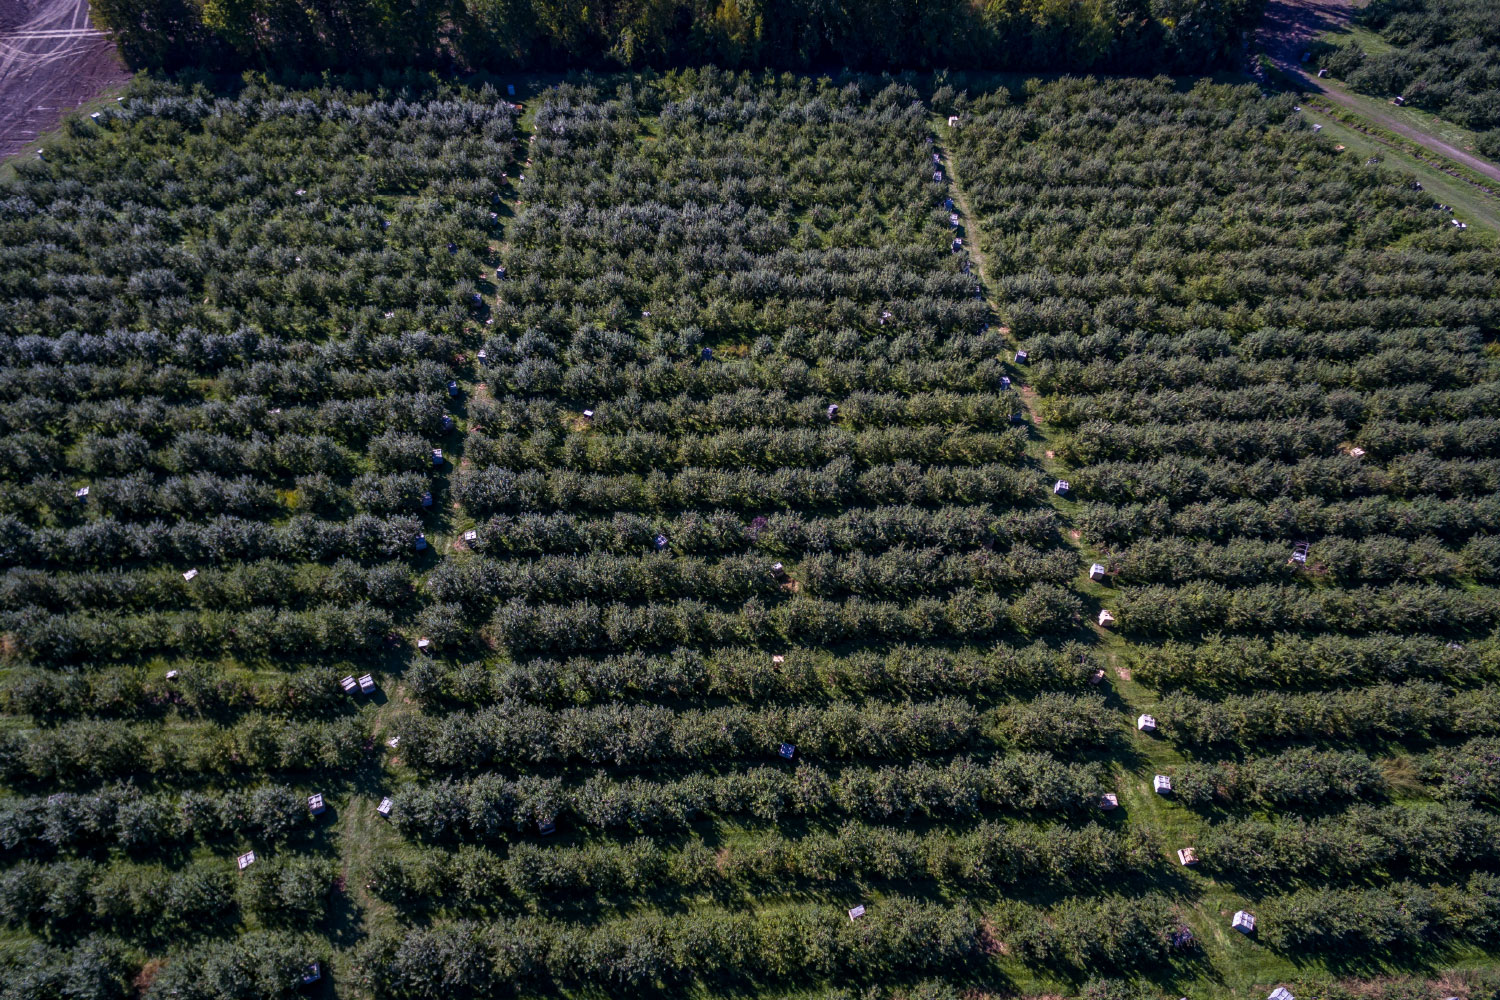 wide view of bird's eye view of orchards